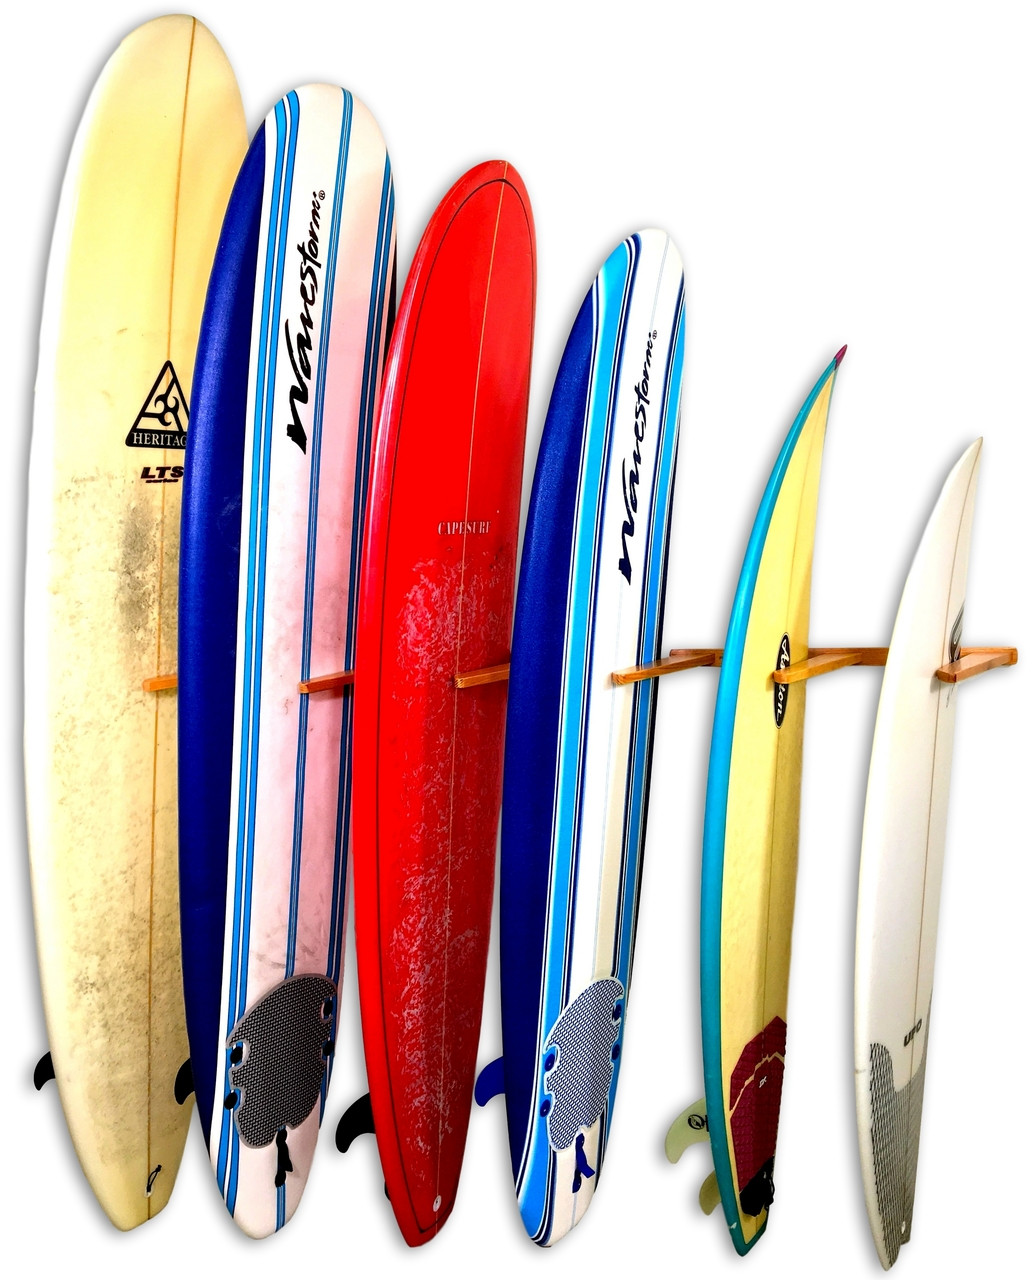 Vertical Surfboard  Wall Rack | Solid Oak Wood | 6 Surfboard Storage